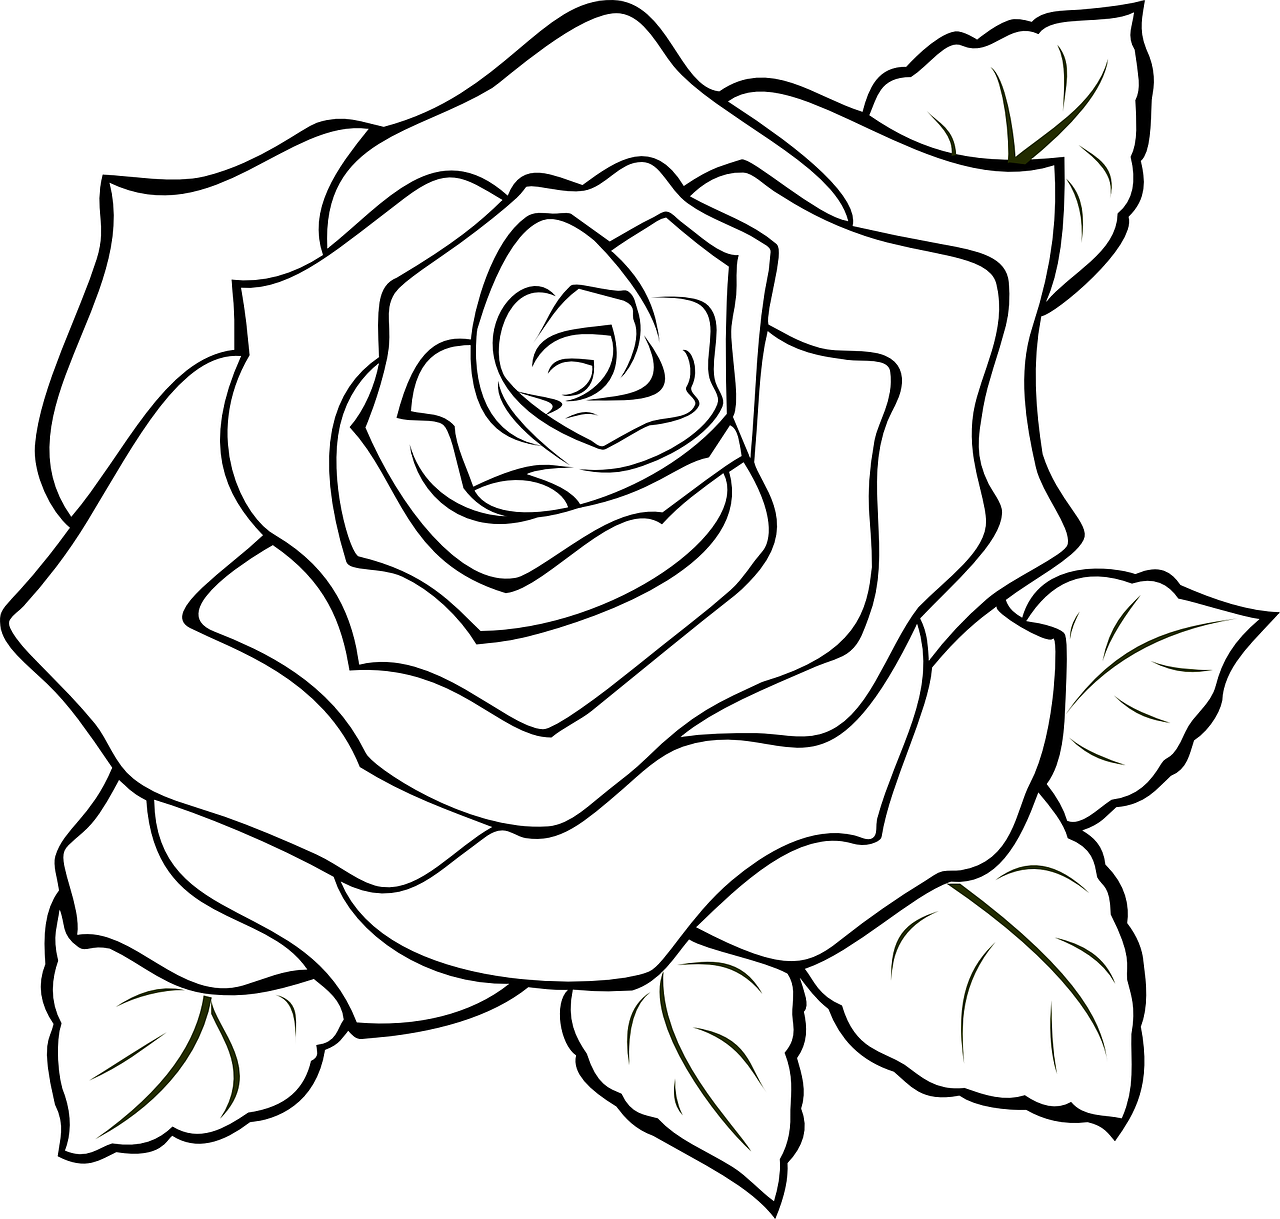 It's just a photo of Rose Stencil Printable pertaining to free printable